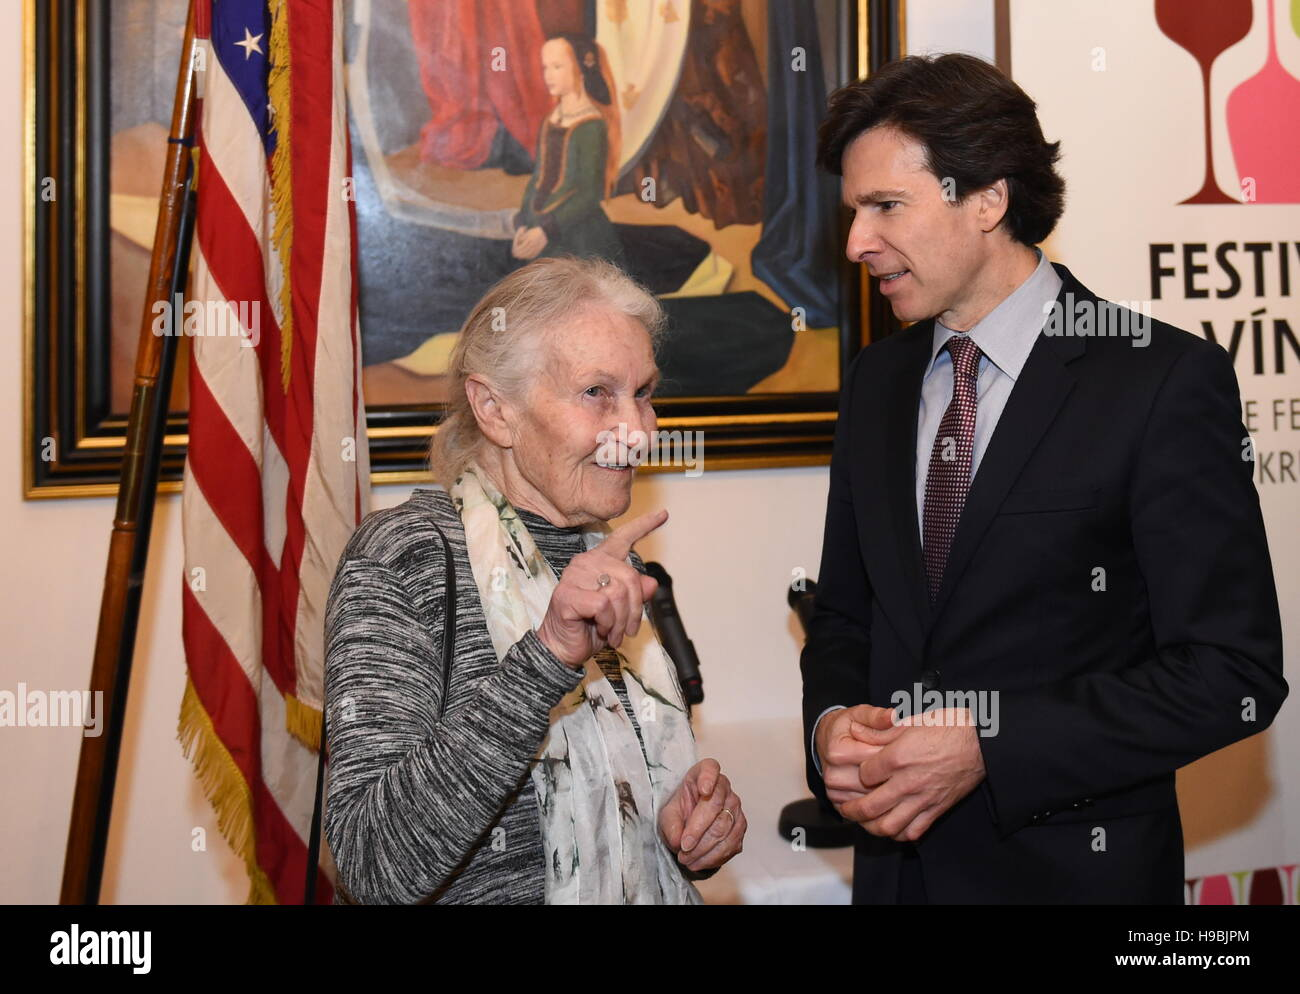 Andrew Schapiro, right, the U.S. ambassador to the Czech Republic, and Ruth Halova, one of 'Winton's children' - Stock Image